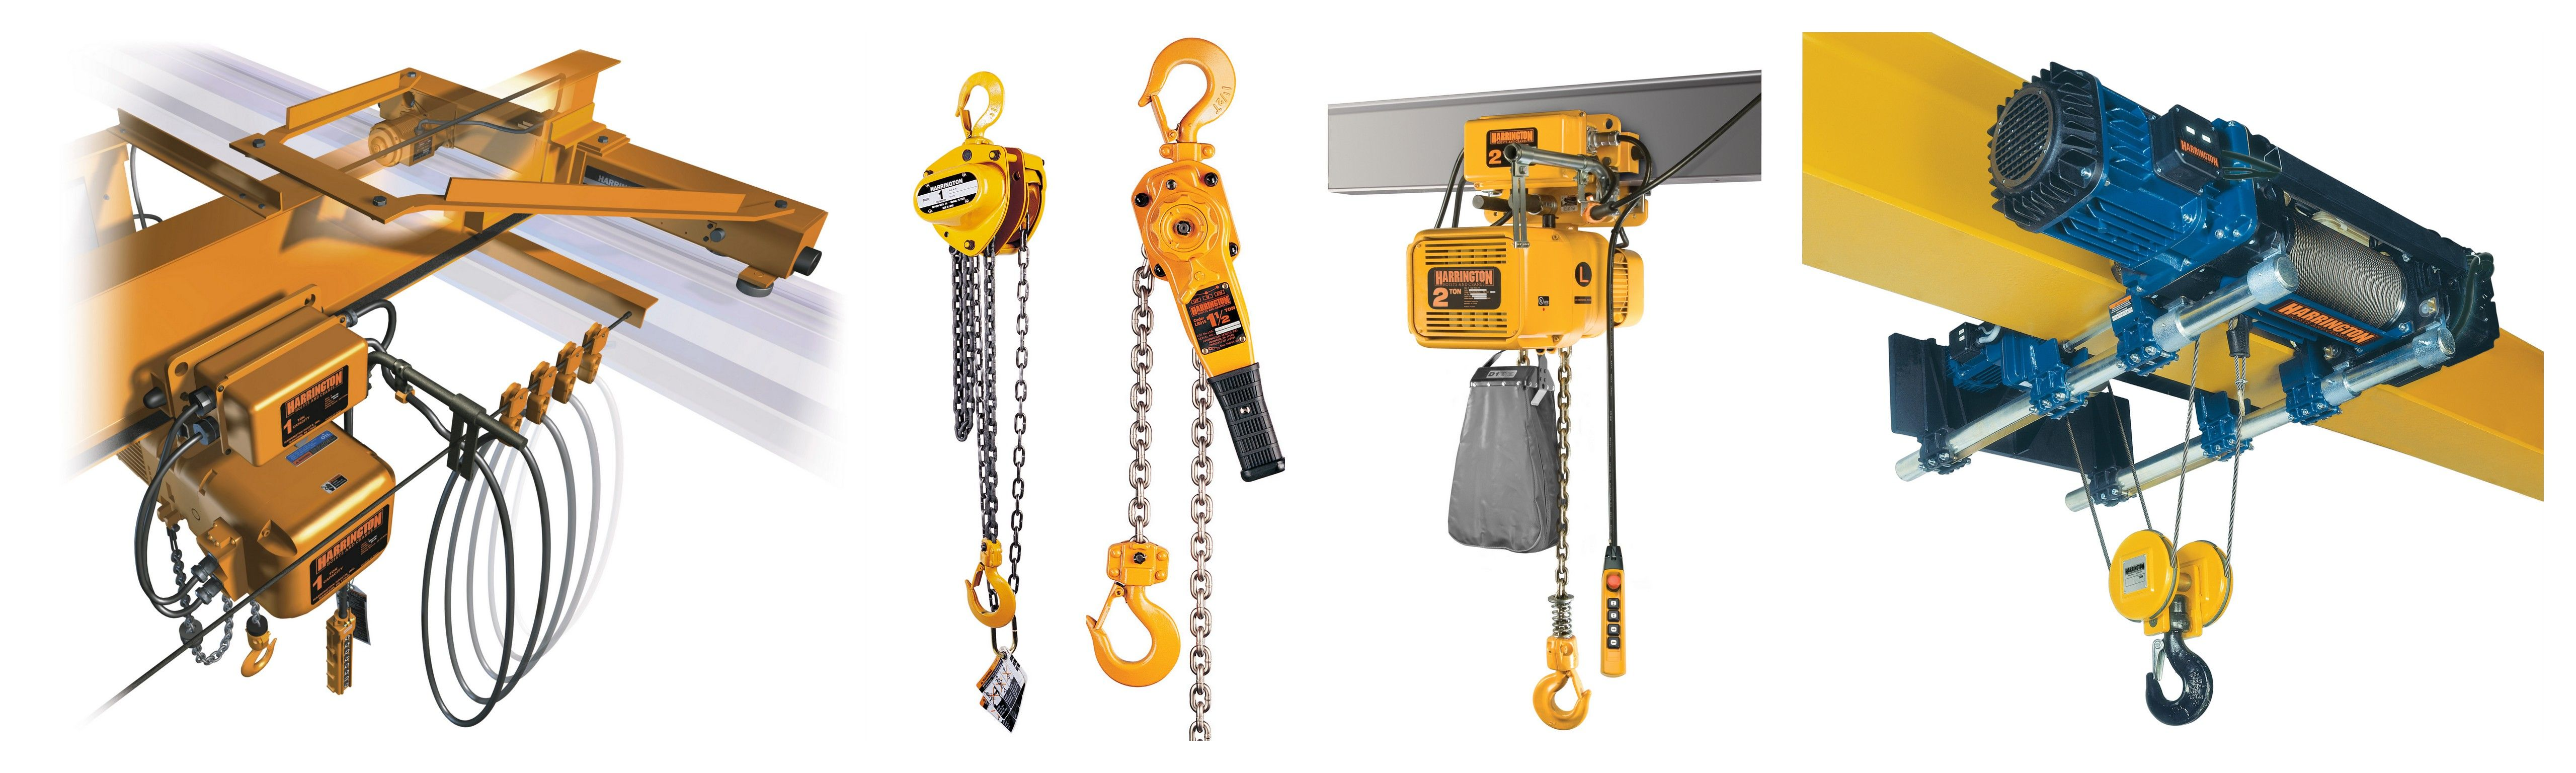 Products - Crane Repair Service